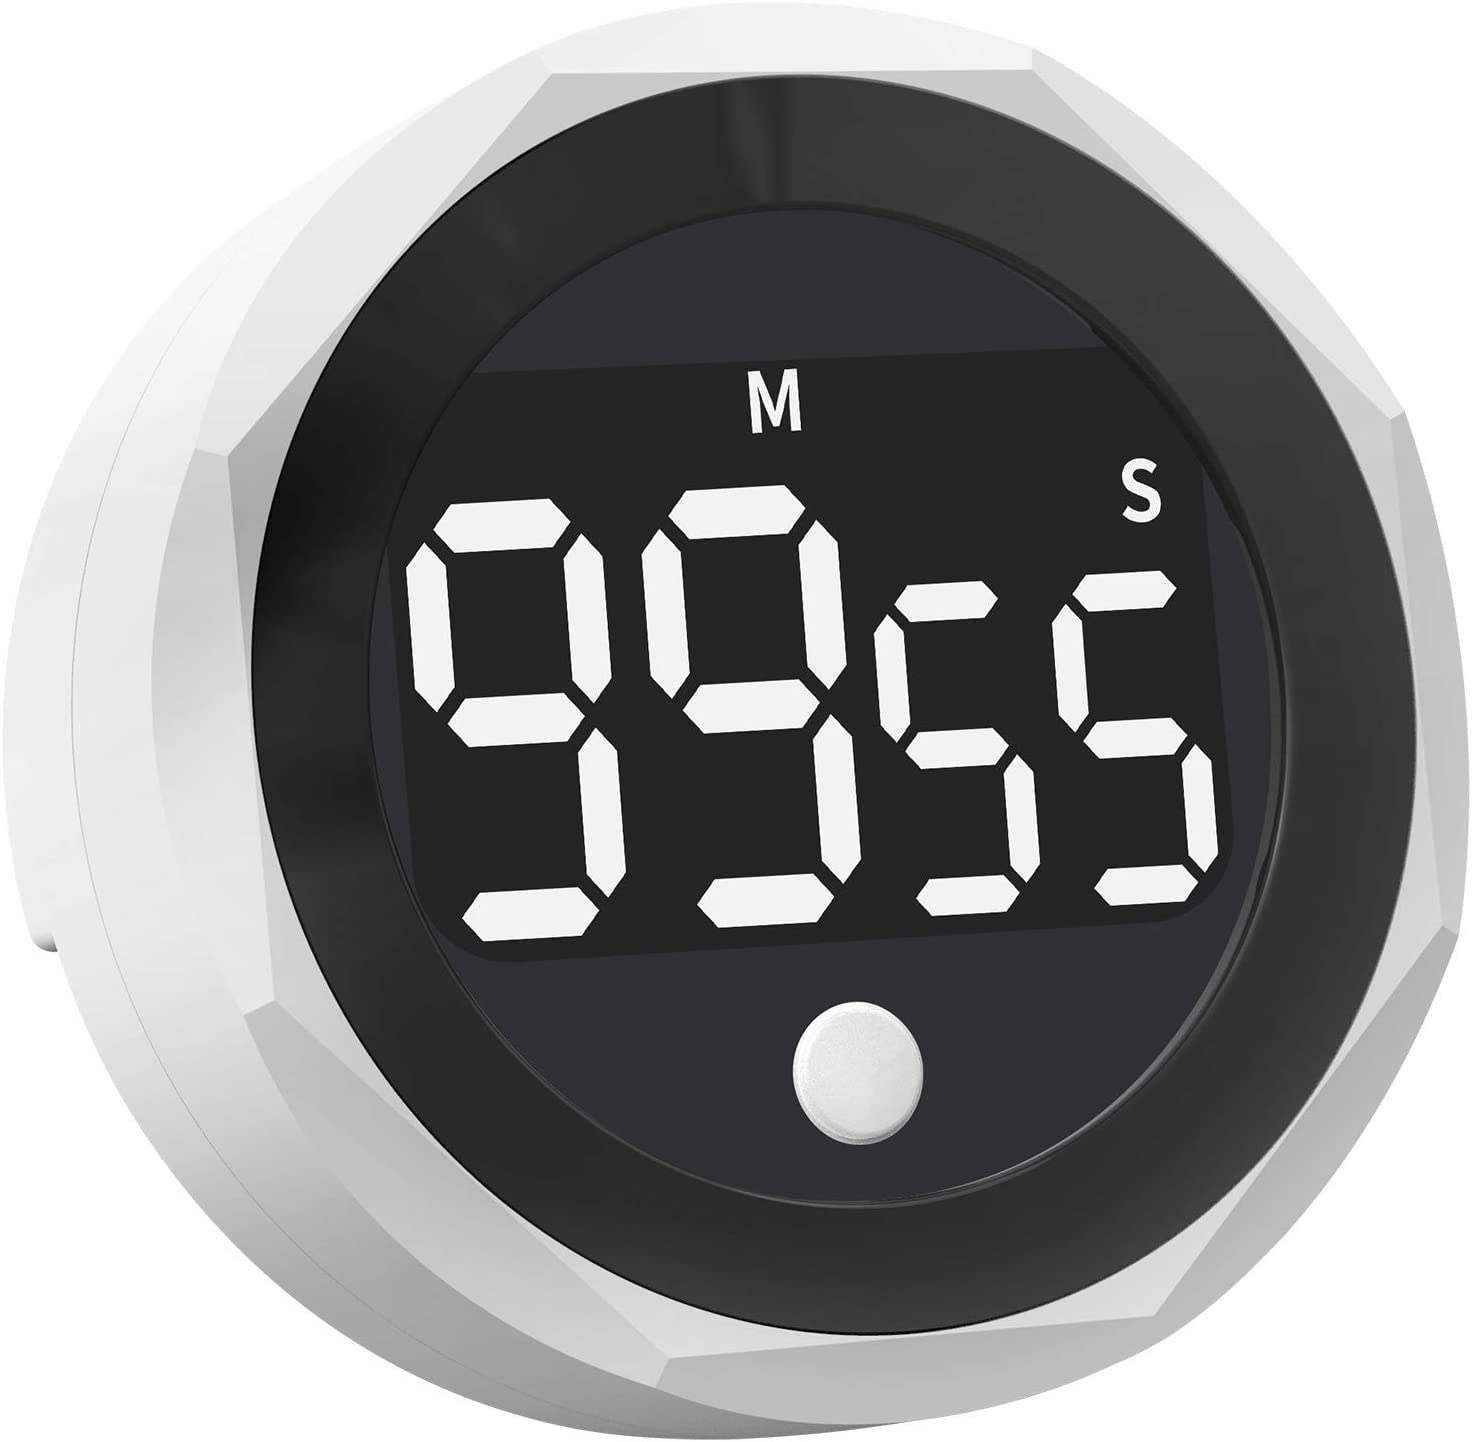 Digital Kitchen Timer - 99 Minutes and 55 Seconds LED Display Visual Timers for Cooking, Food, Game, Fitness, Autism, Meeting, Countdown Timer for Kids Time Management (White)